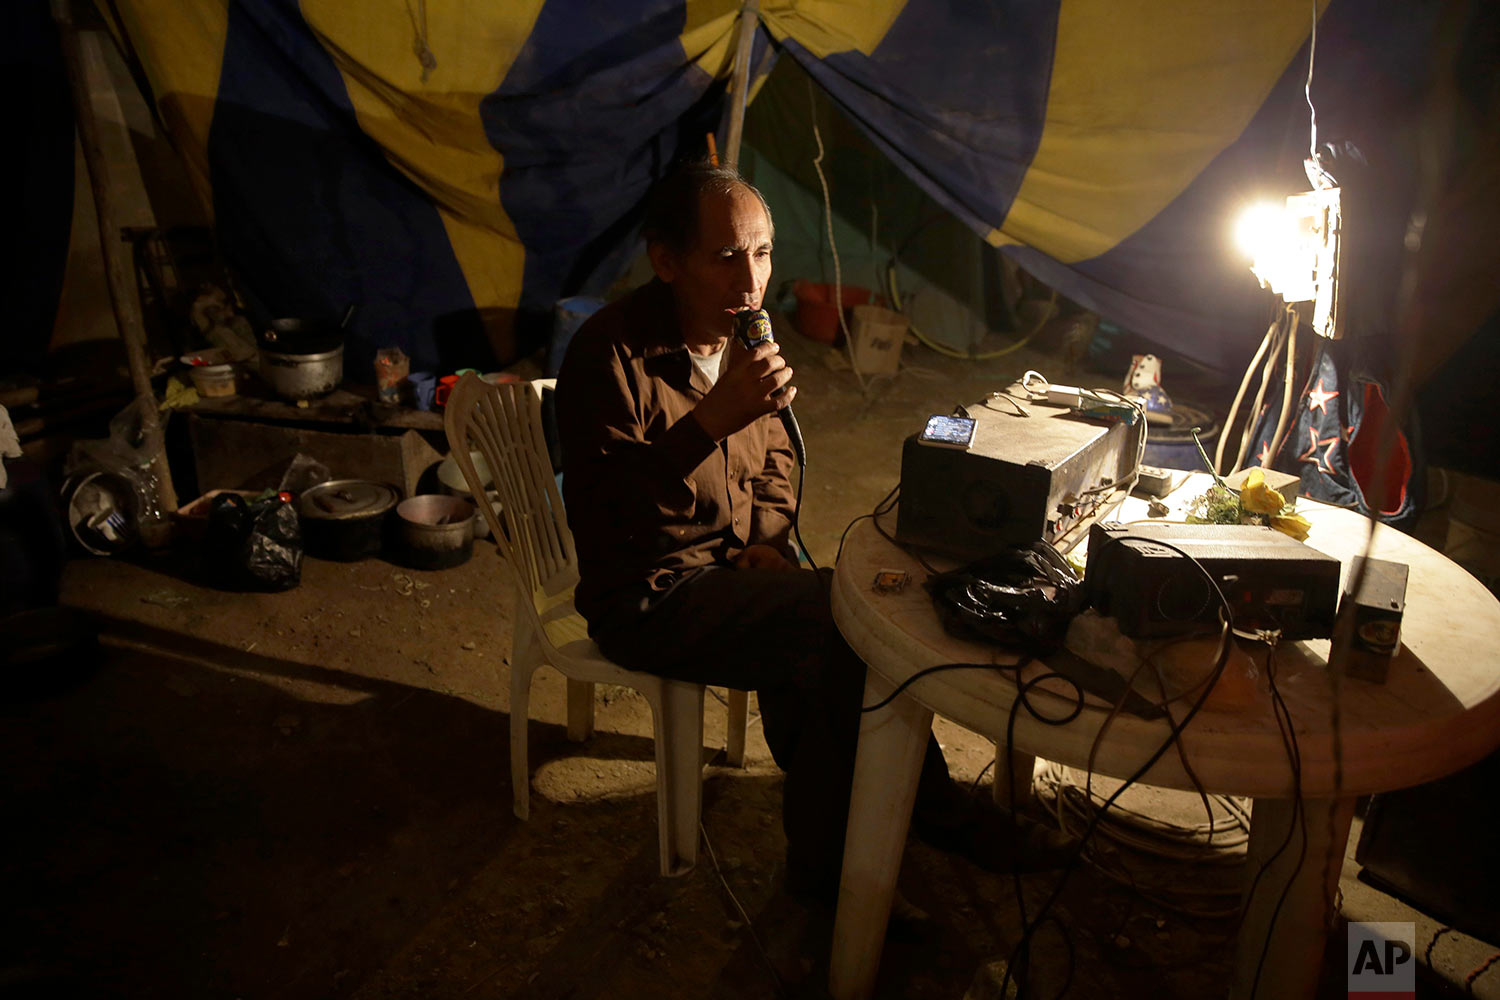 Circus owner and clown Jose Alvarez talks into a loud speaker system to announce the soon-to-start opening act, from the circus tent set up in the shantytown of Puente Piedra on the outskirts of Lima, Peru, July 8, 2018. (AP Photo/Martin Mejia)